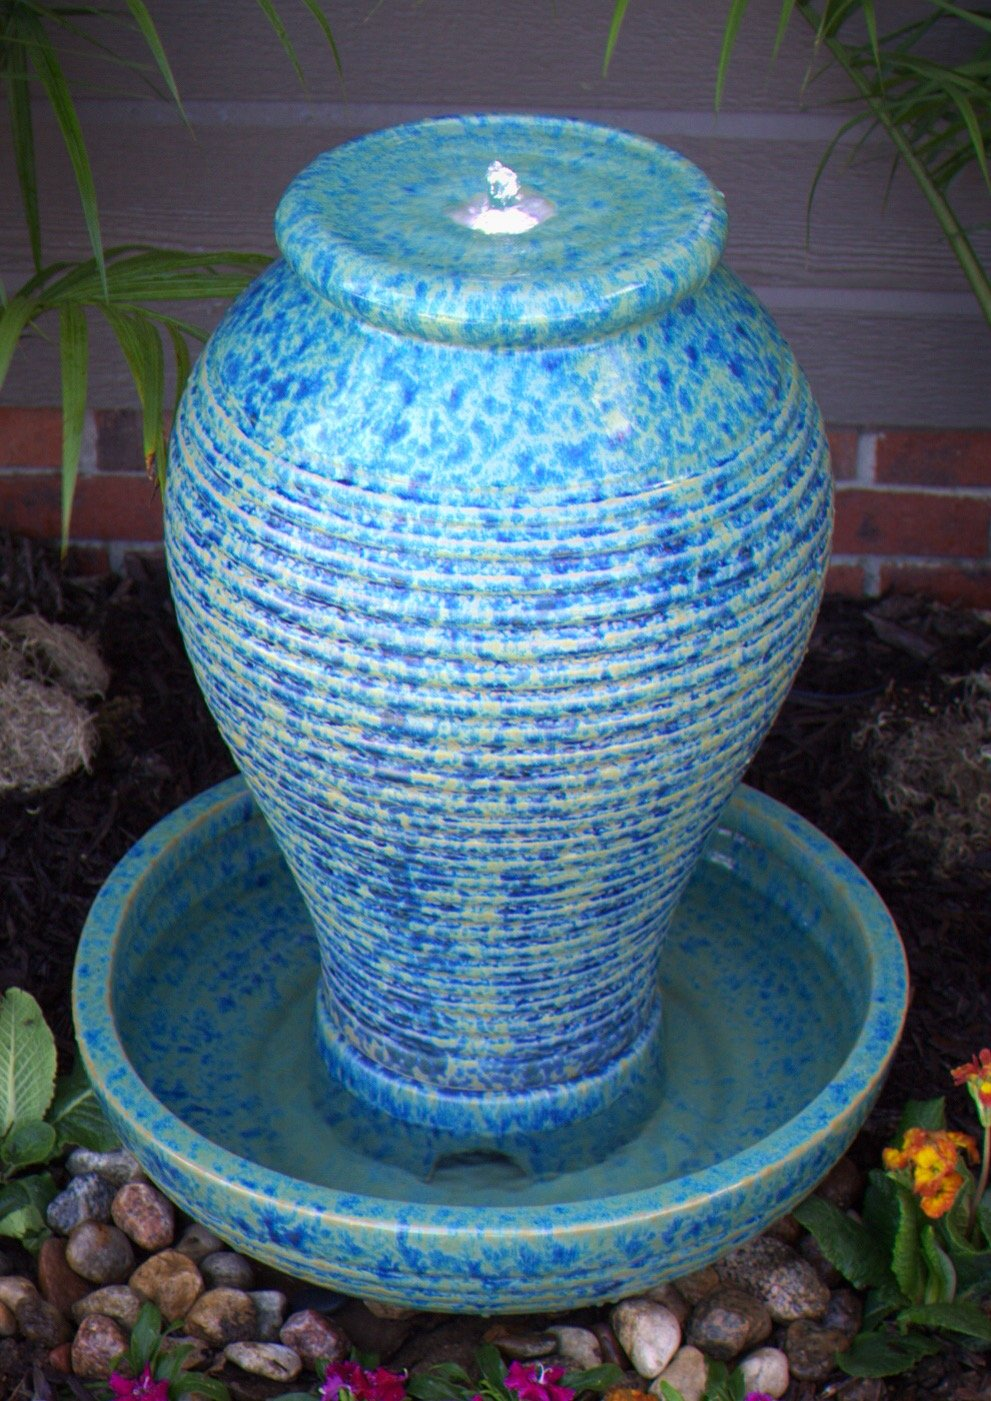 Outdoor LED lighted Ceramic Fountain - Blue